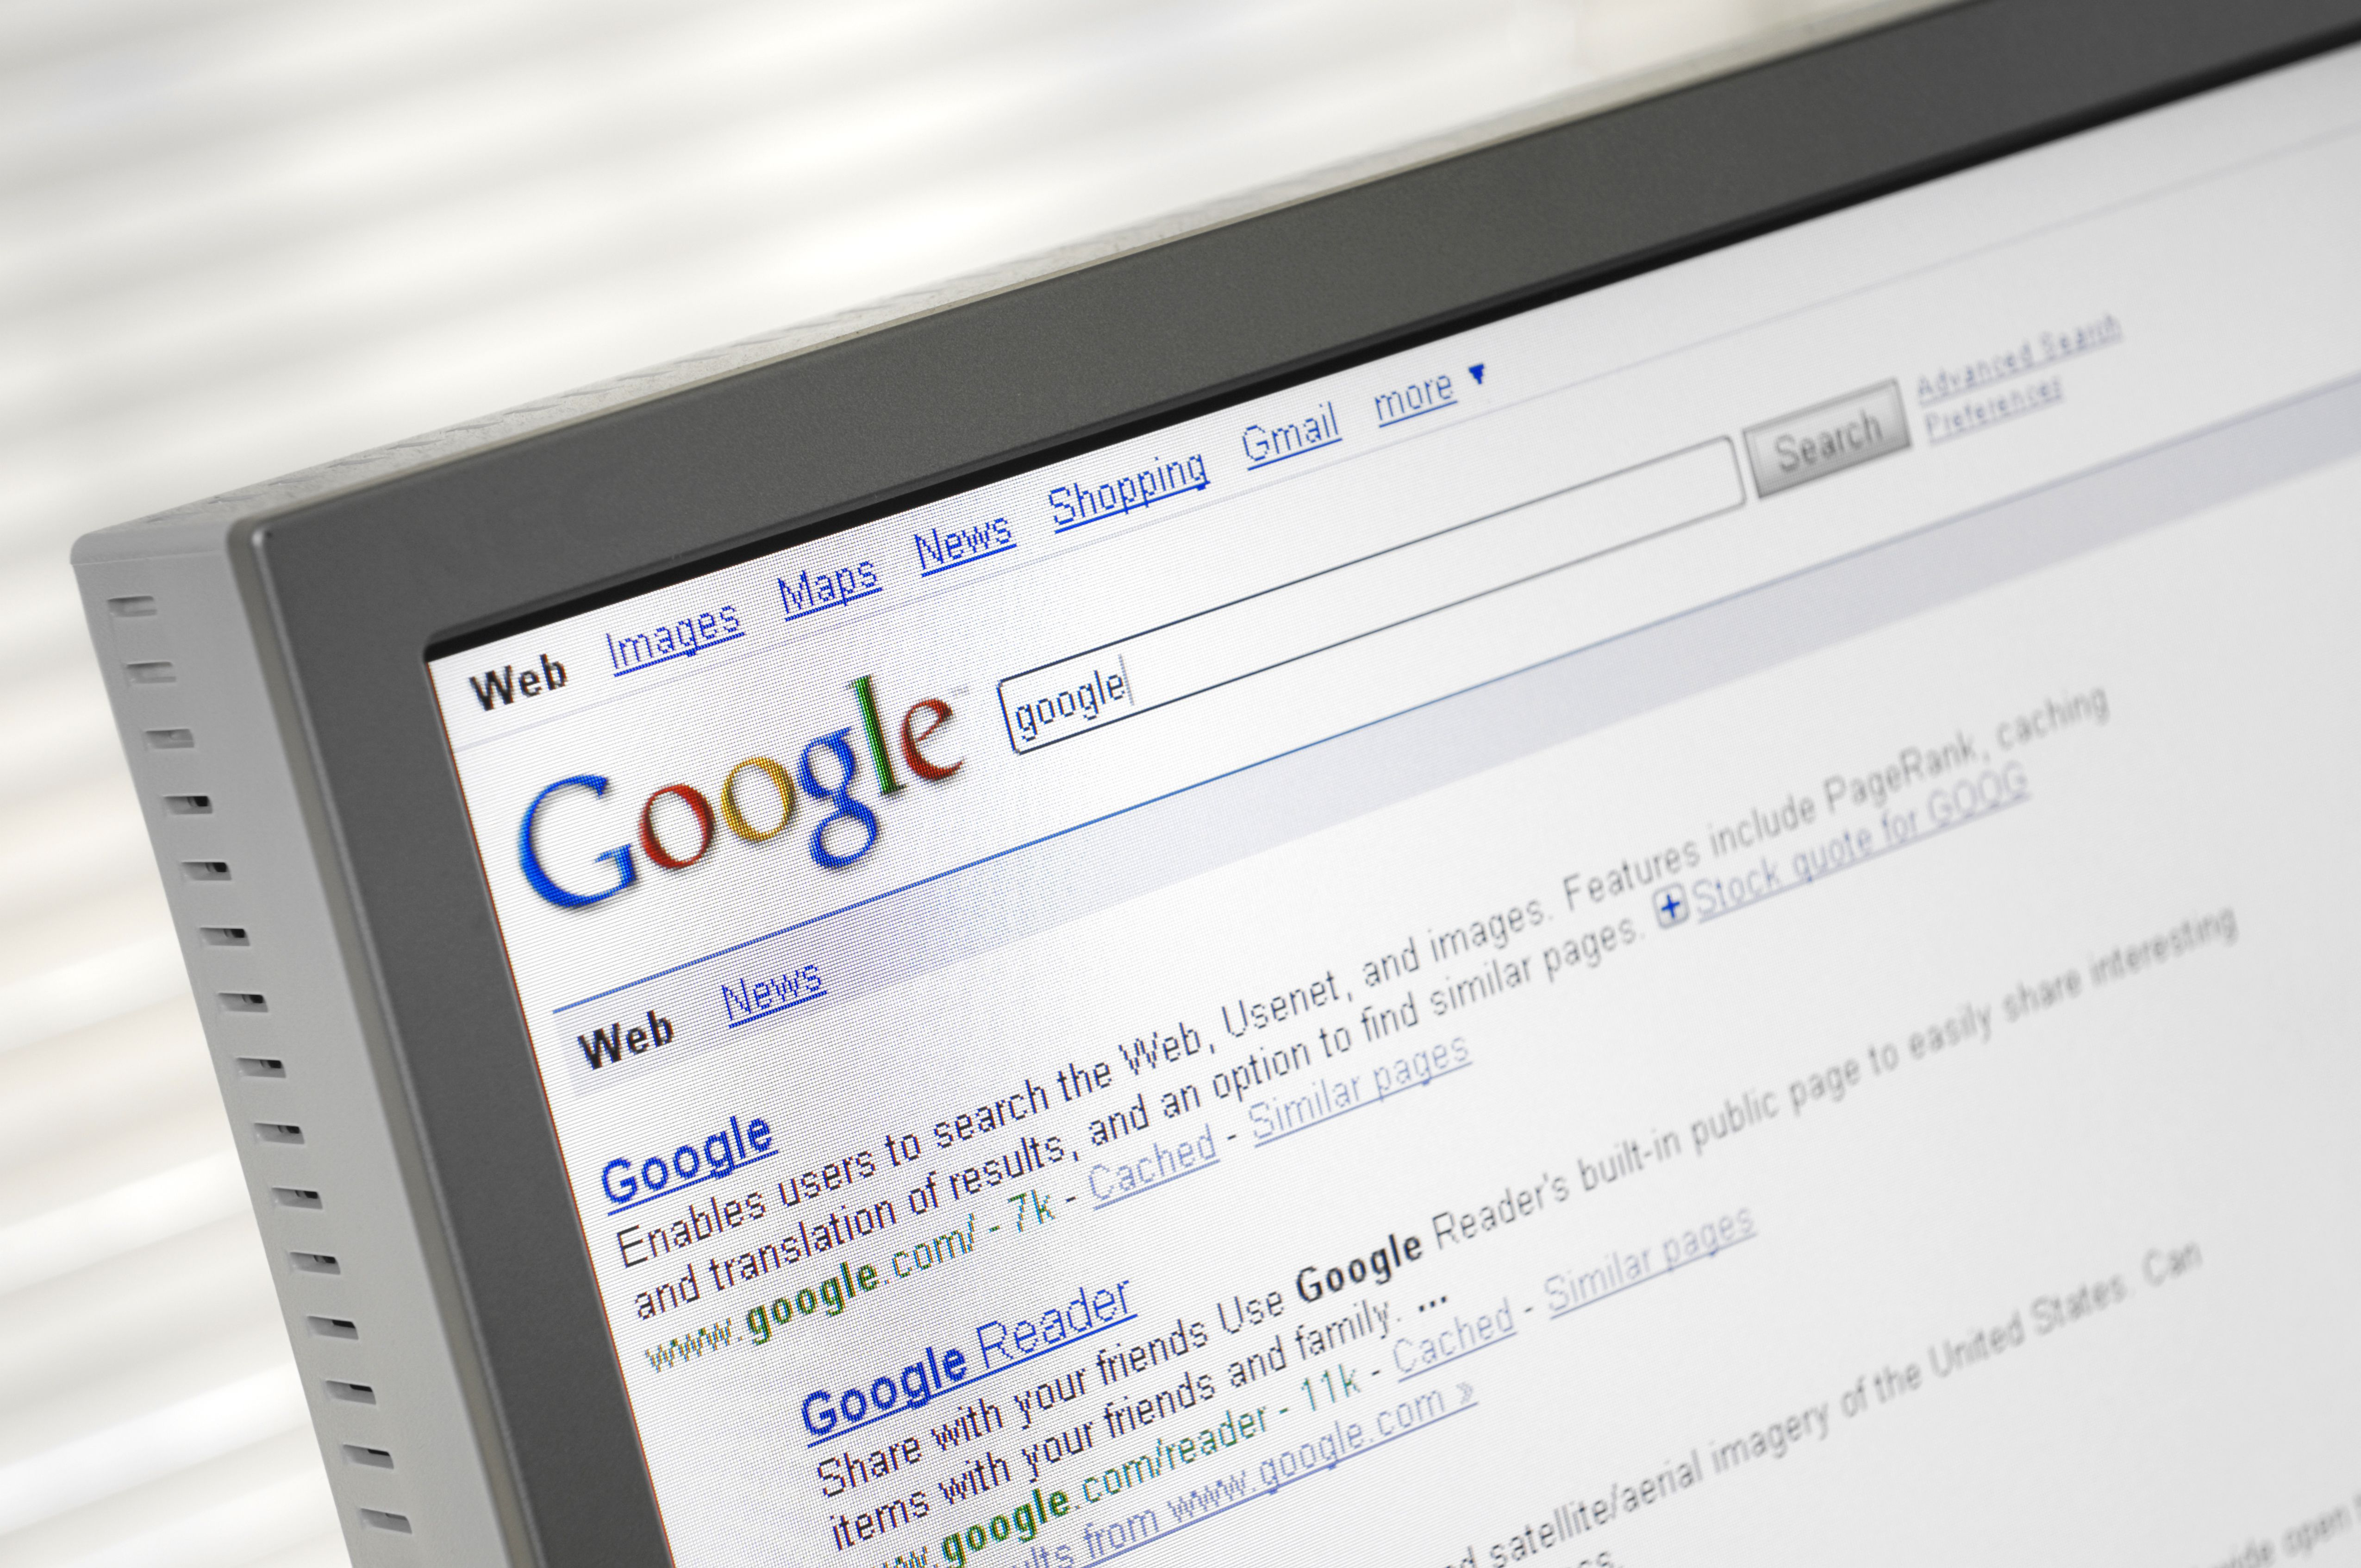 Computer monitor showing a Google search